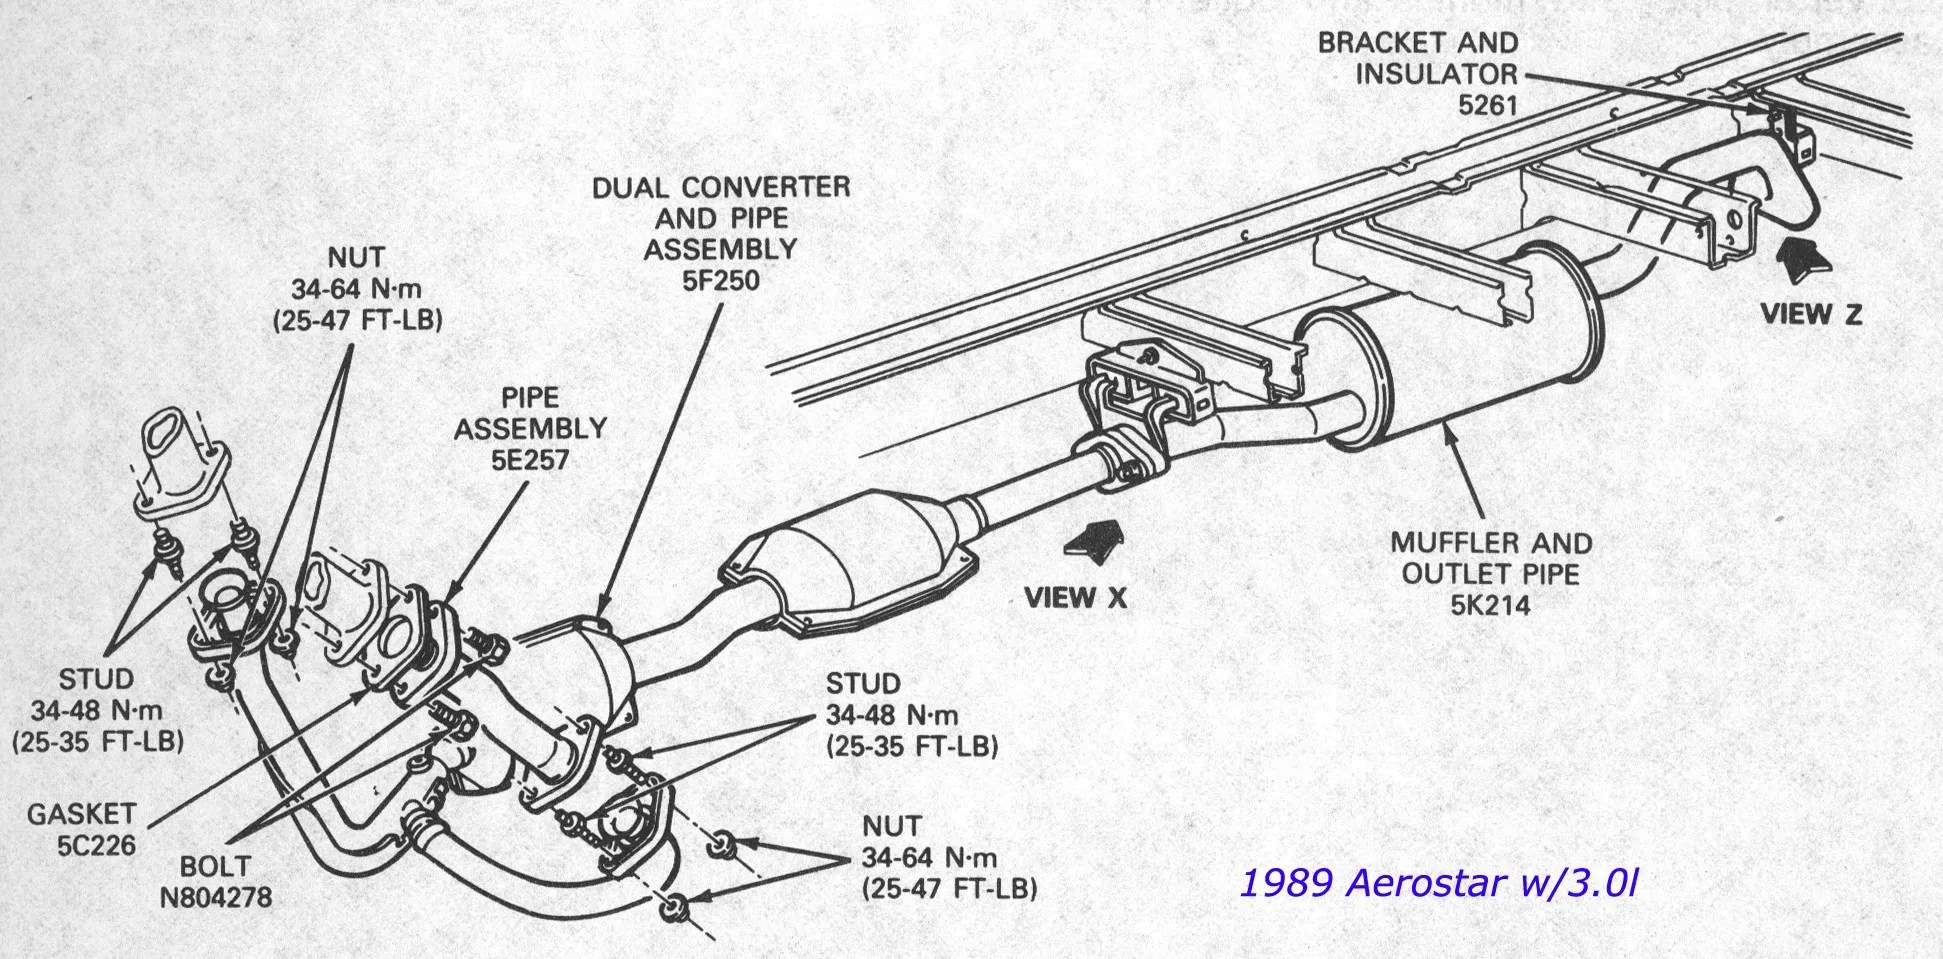 hight resolution of ford exhaust diagram wiring diagram schematics 2011 ford escape parts diagram 2011 ford escape exhaust system